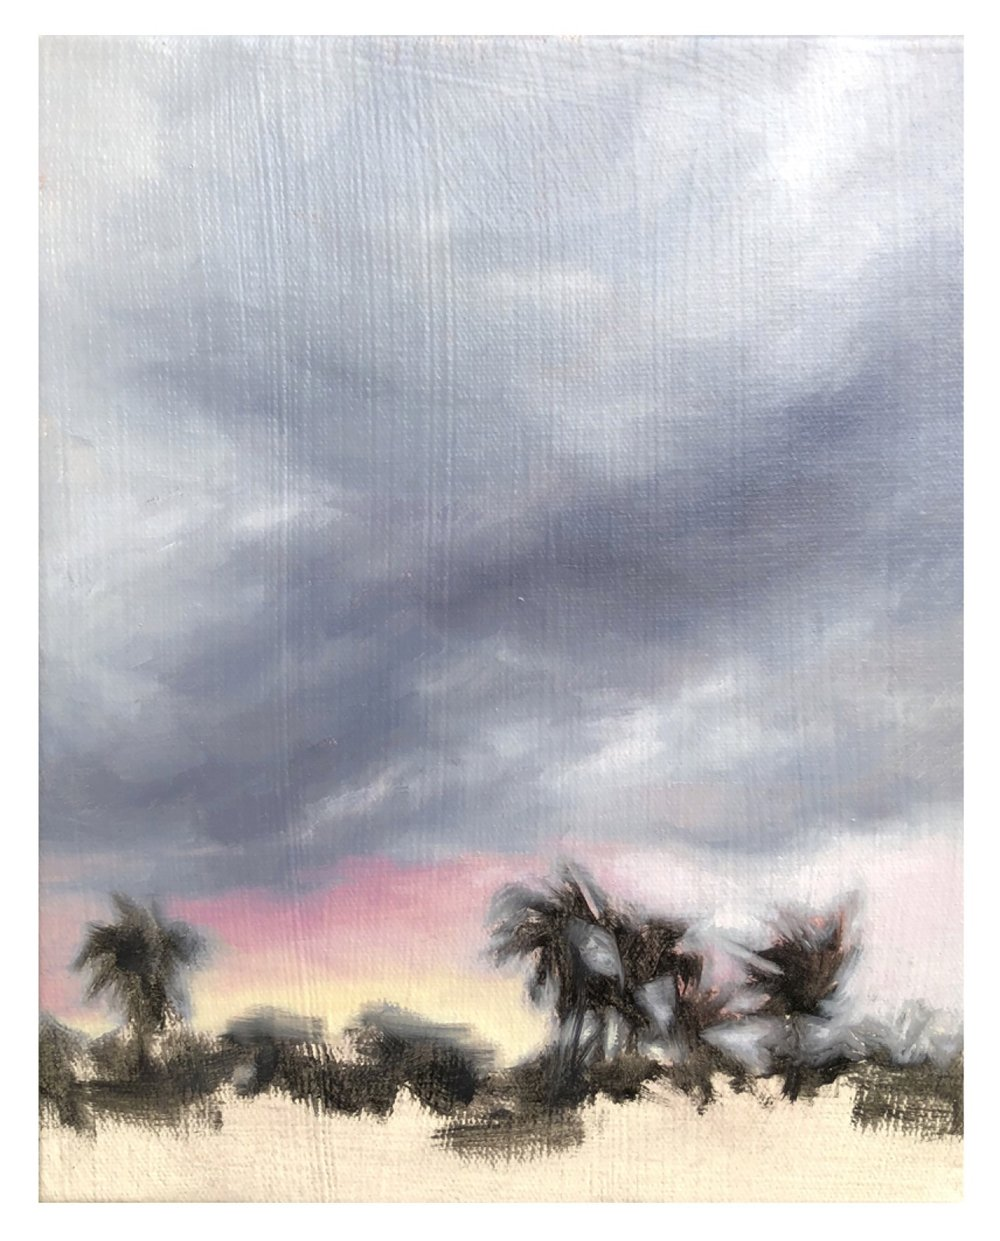 MIAMI SUNSET (STUDY).jpg